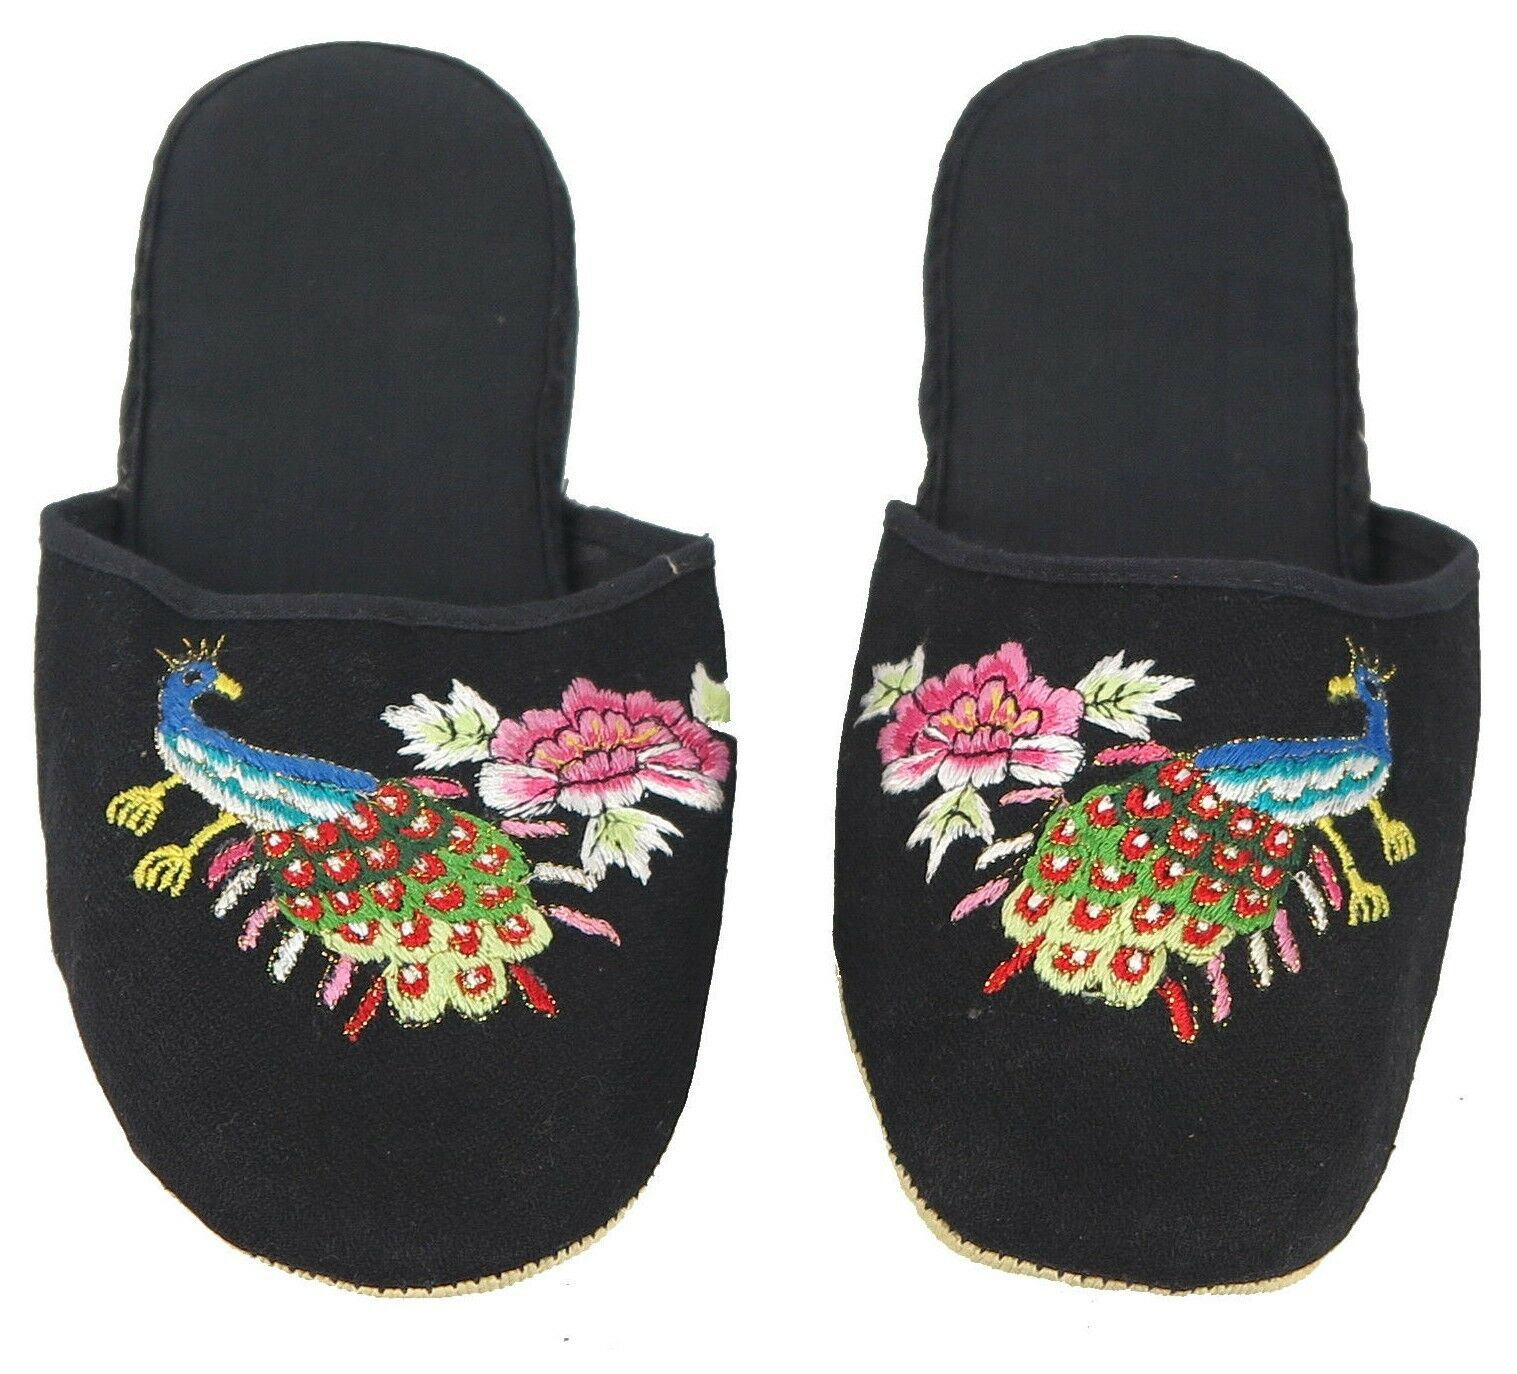 Handmade Embroidered Peacock Chinese Womens Cotton Slippers Blue Red Black Turquoise New